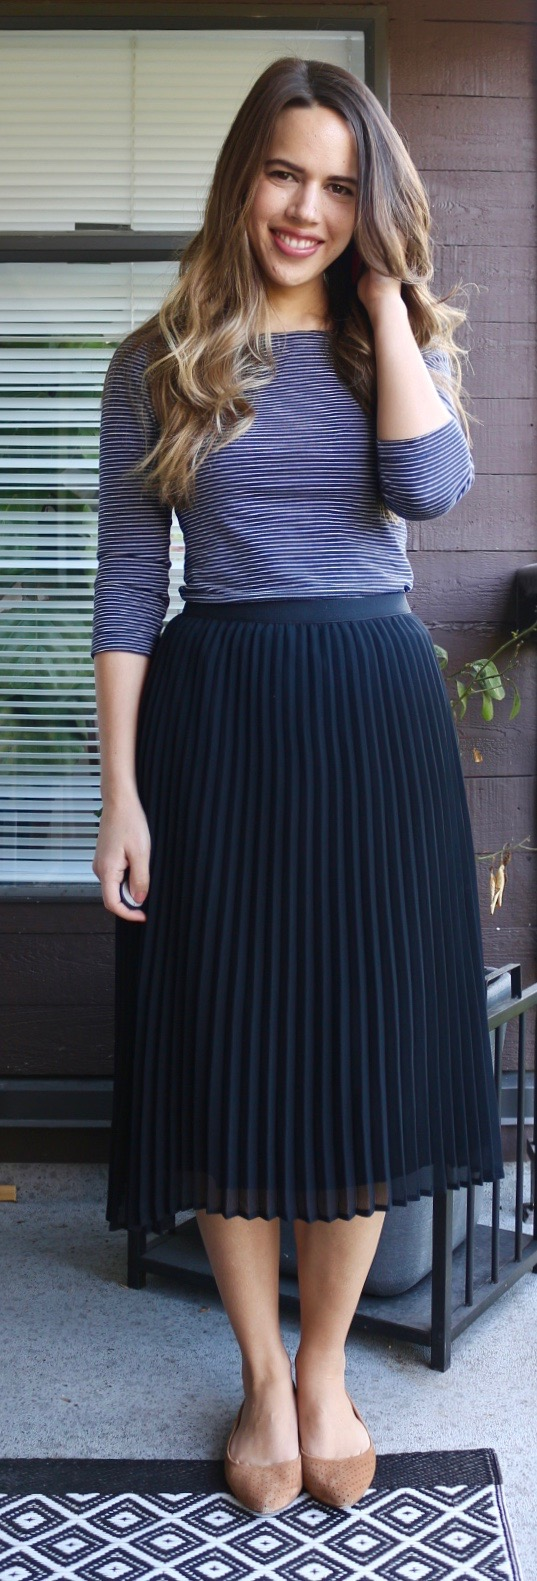 Jules in Flats - Dynamite Black Pleated Midi Skirt with Striped Boatneck Tee